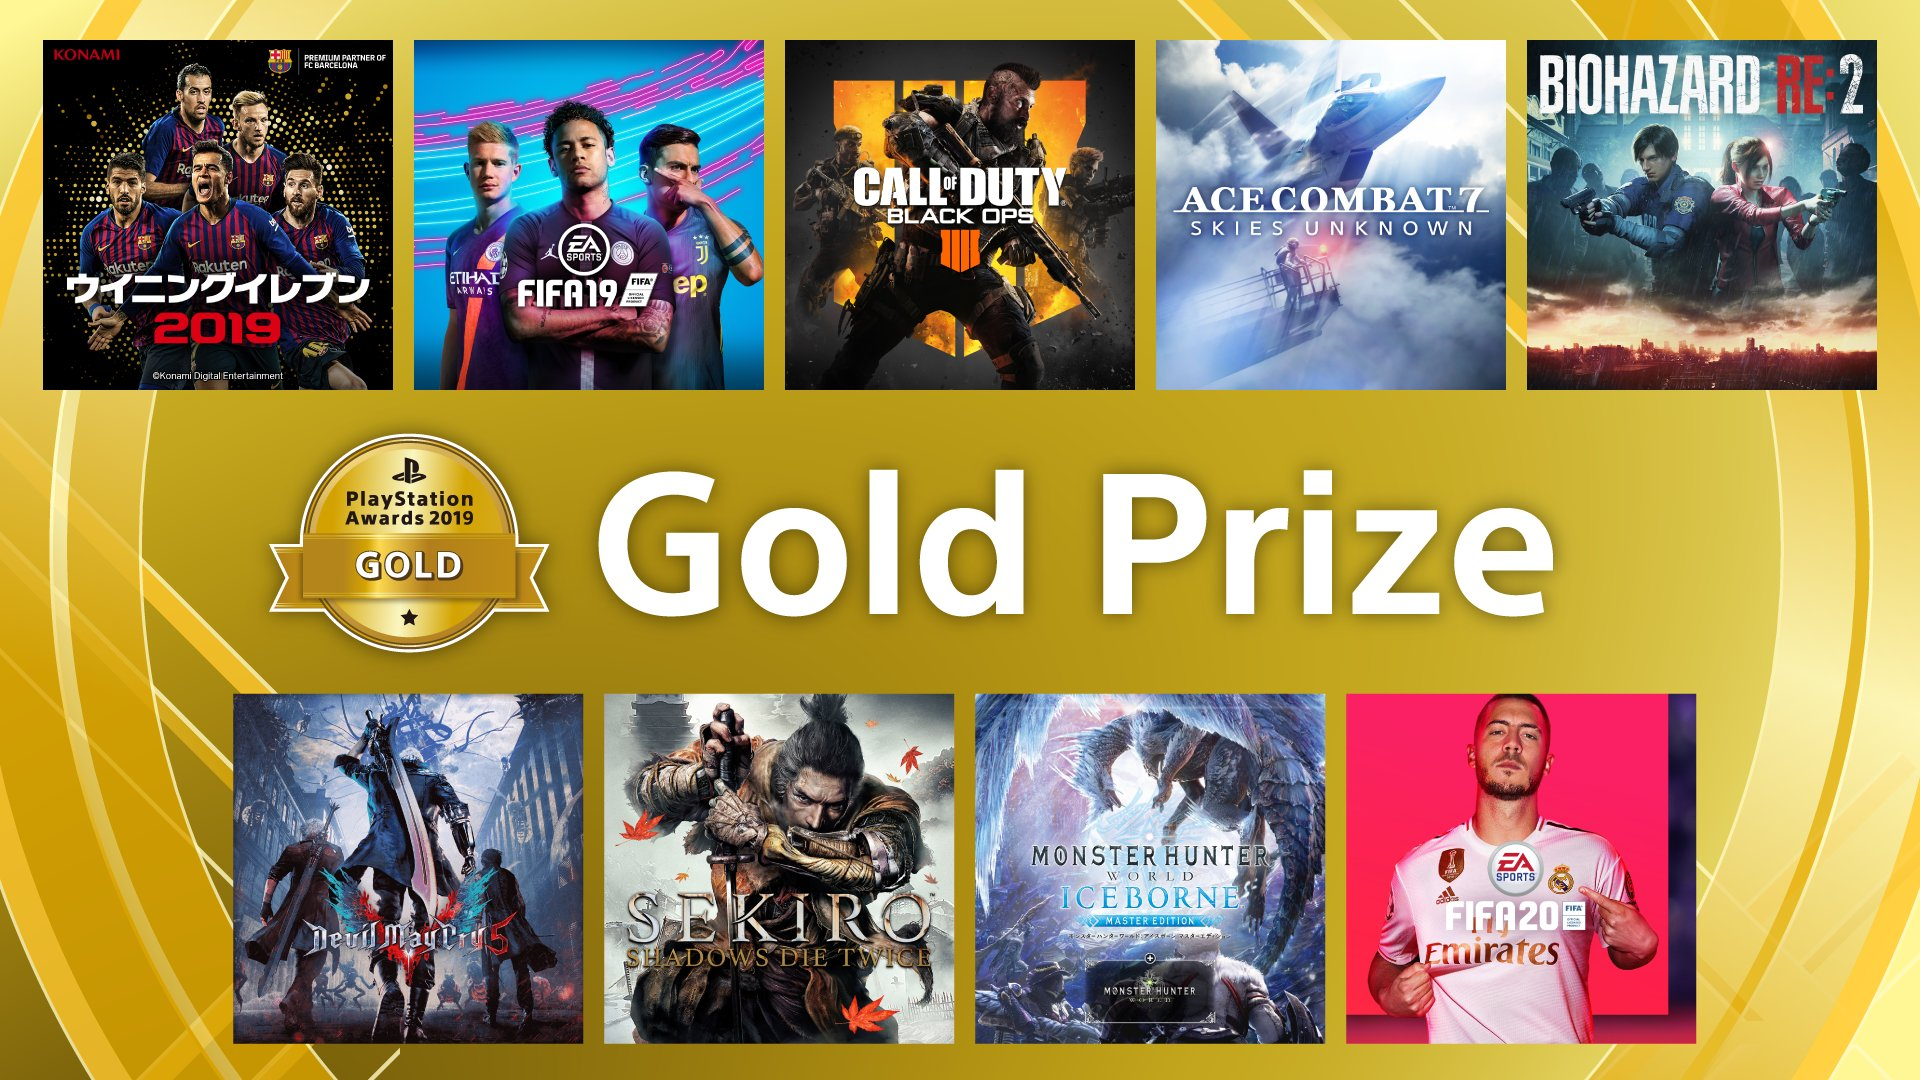 playstation gold prize - To już 25 lat - PlayStation 25th Anniversary!